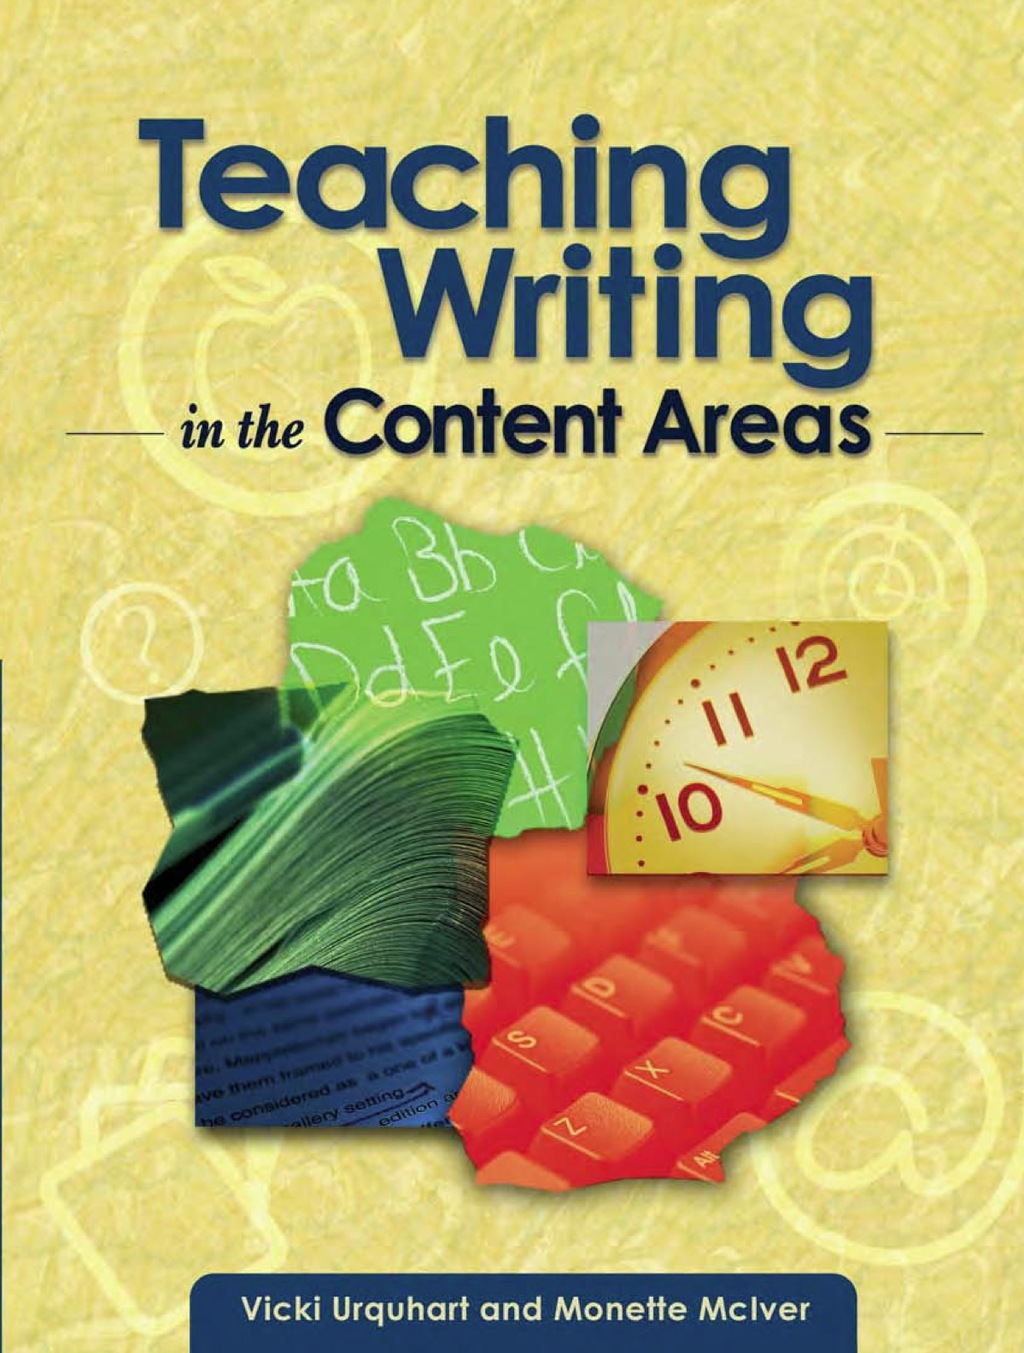 Teaching Writing in the Content Areas (ebook) eBooks